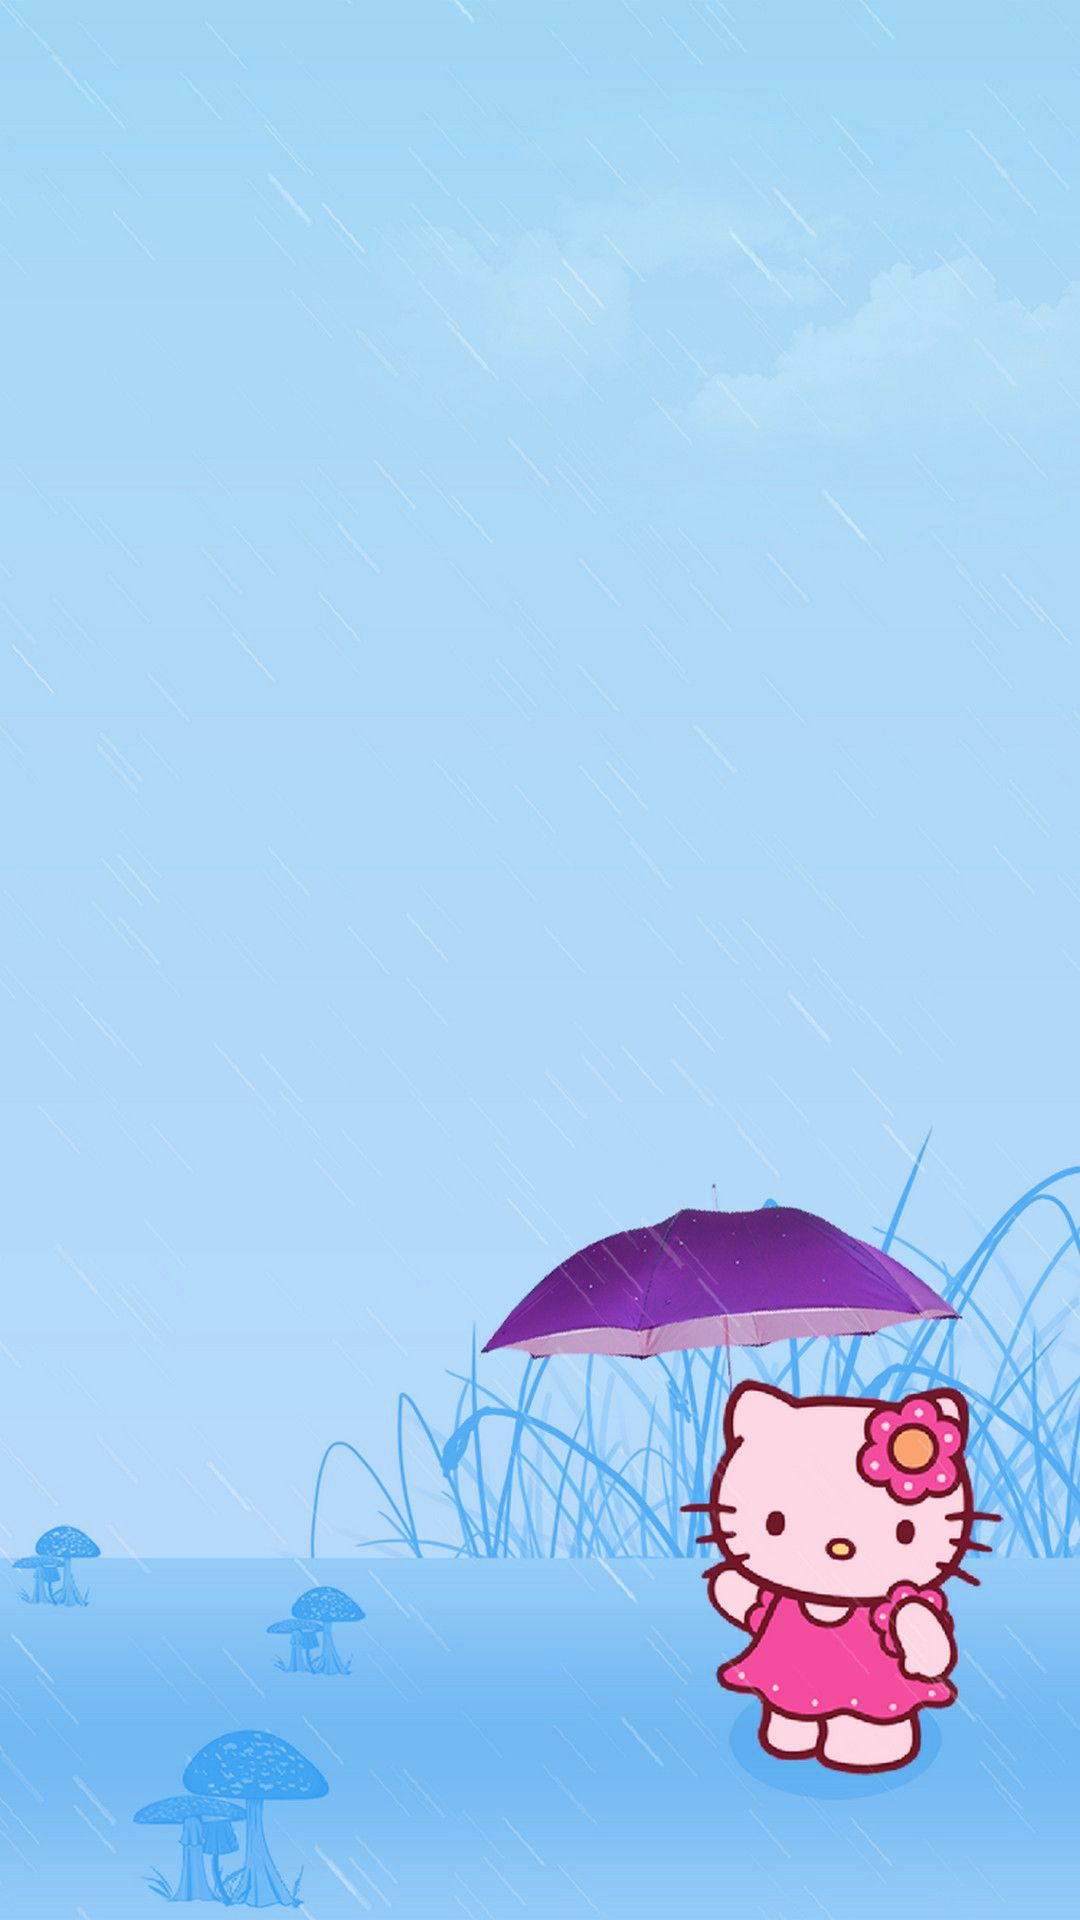 Cute Hello Kity Umbrella Phone Wallpaper ~ Fisoloji